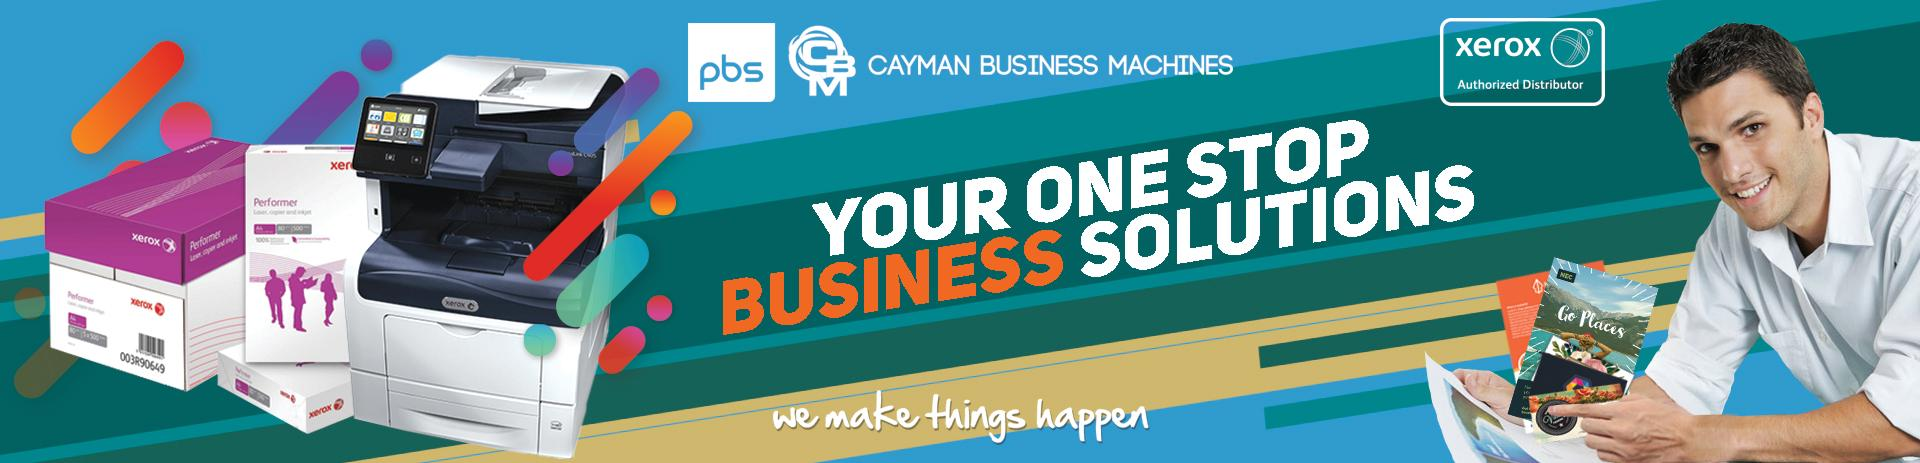 Cayman Business Machines Banner